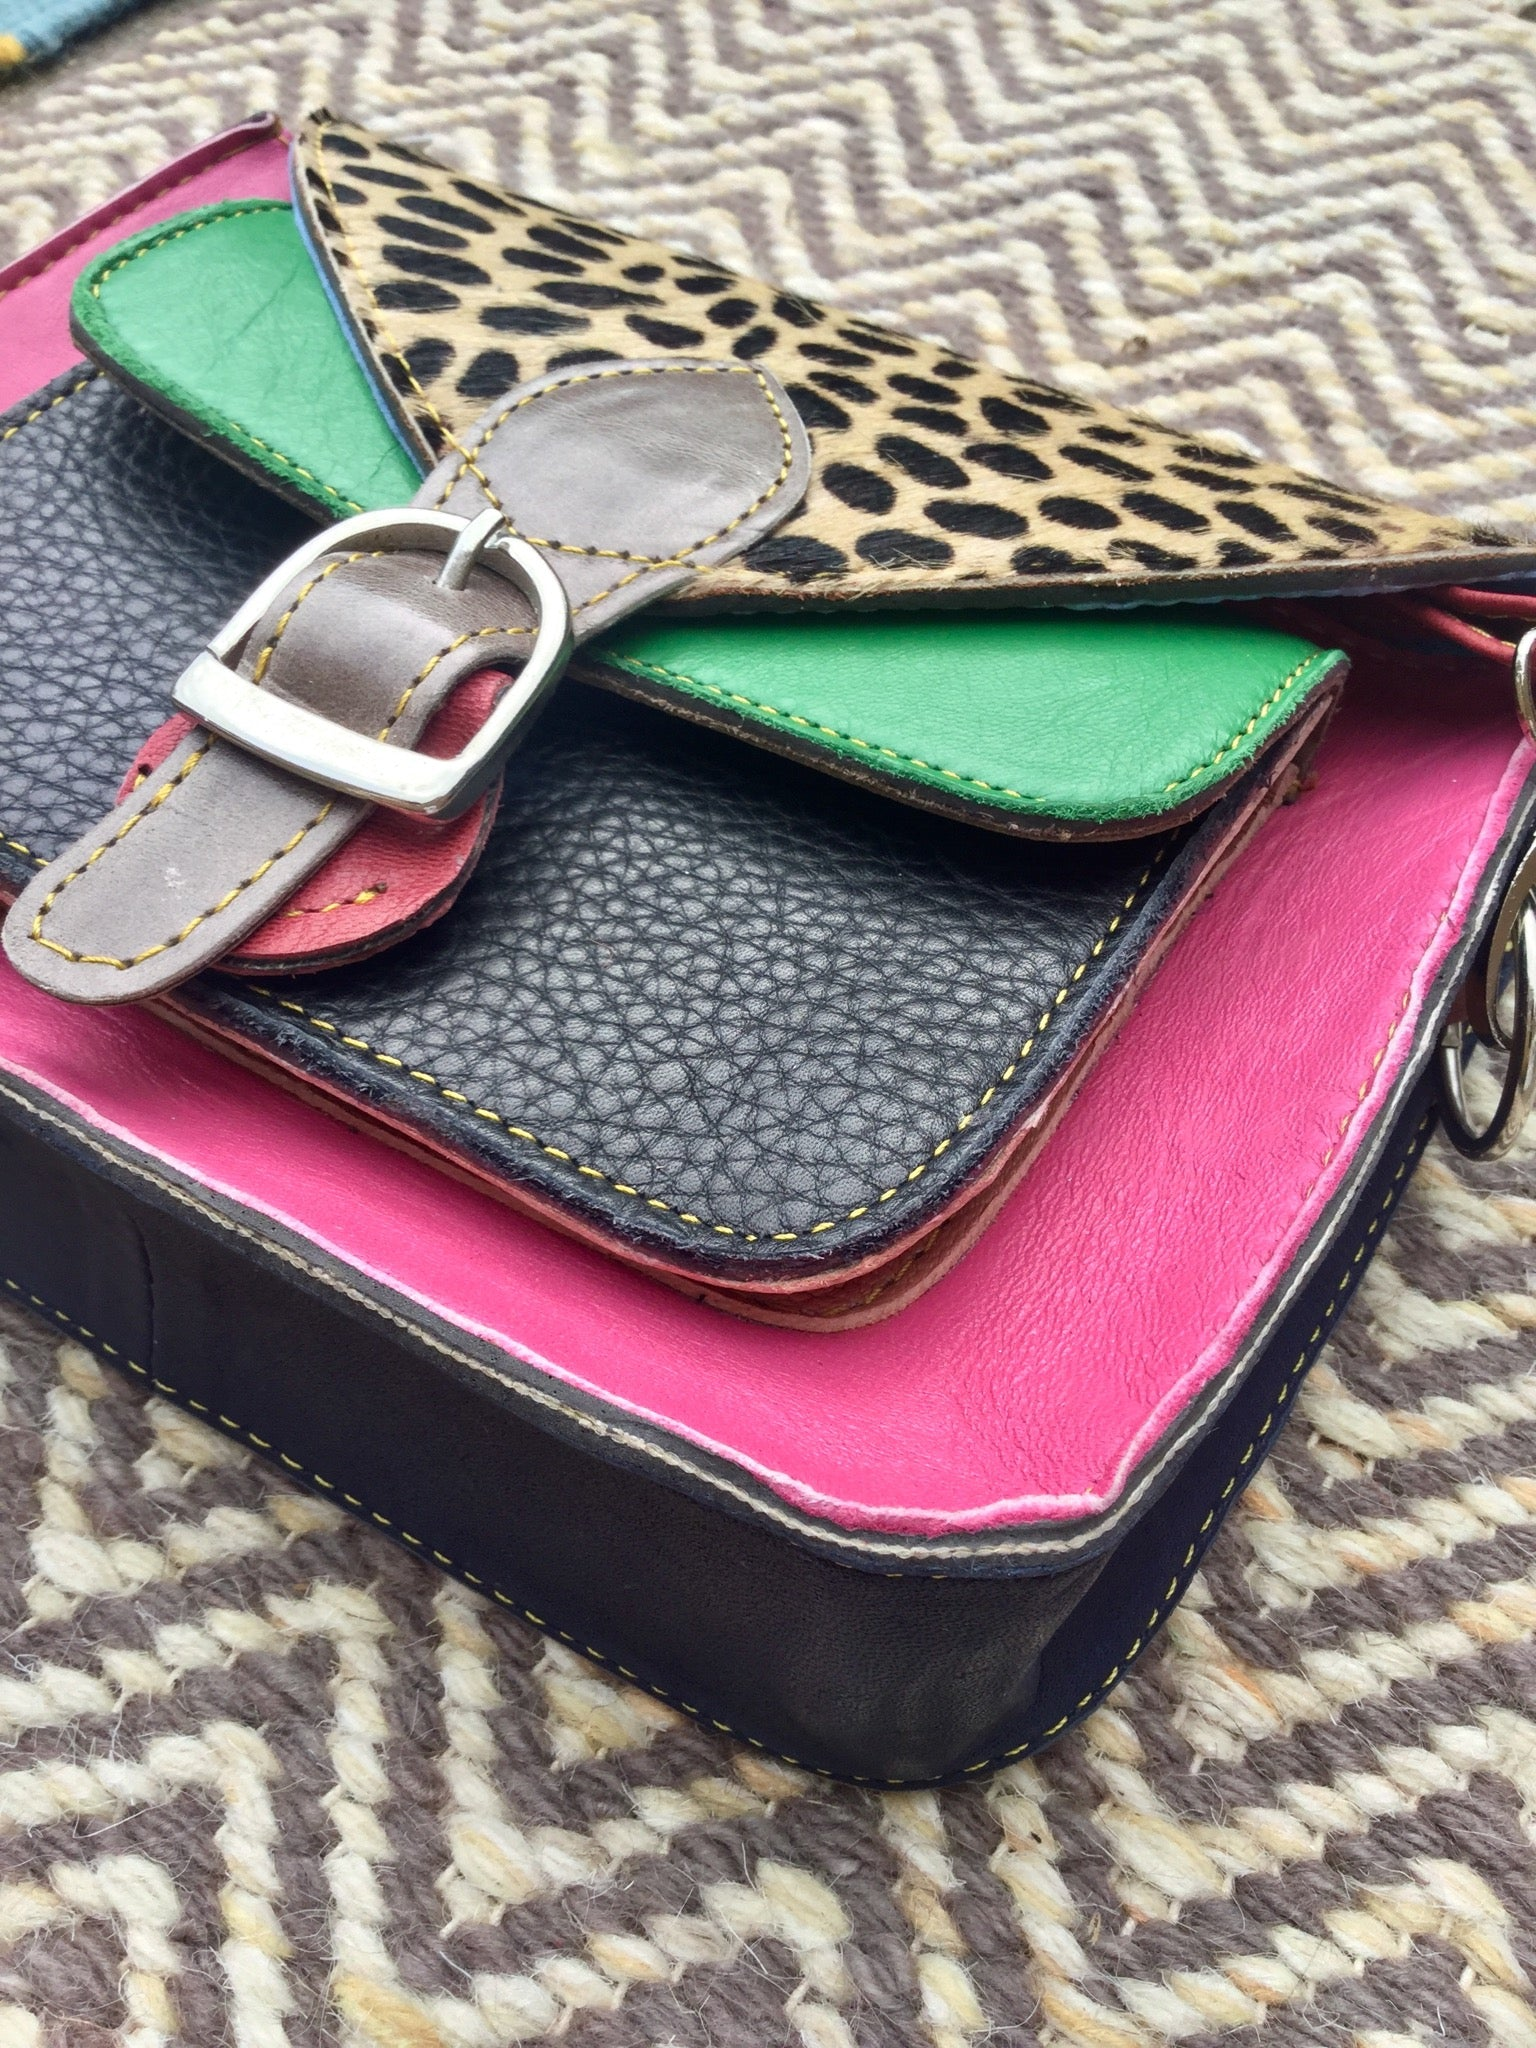 Sketch London fashion animal print satchel bags pink green upcycled leather cheetah